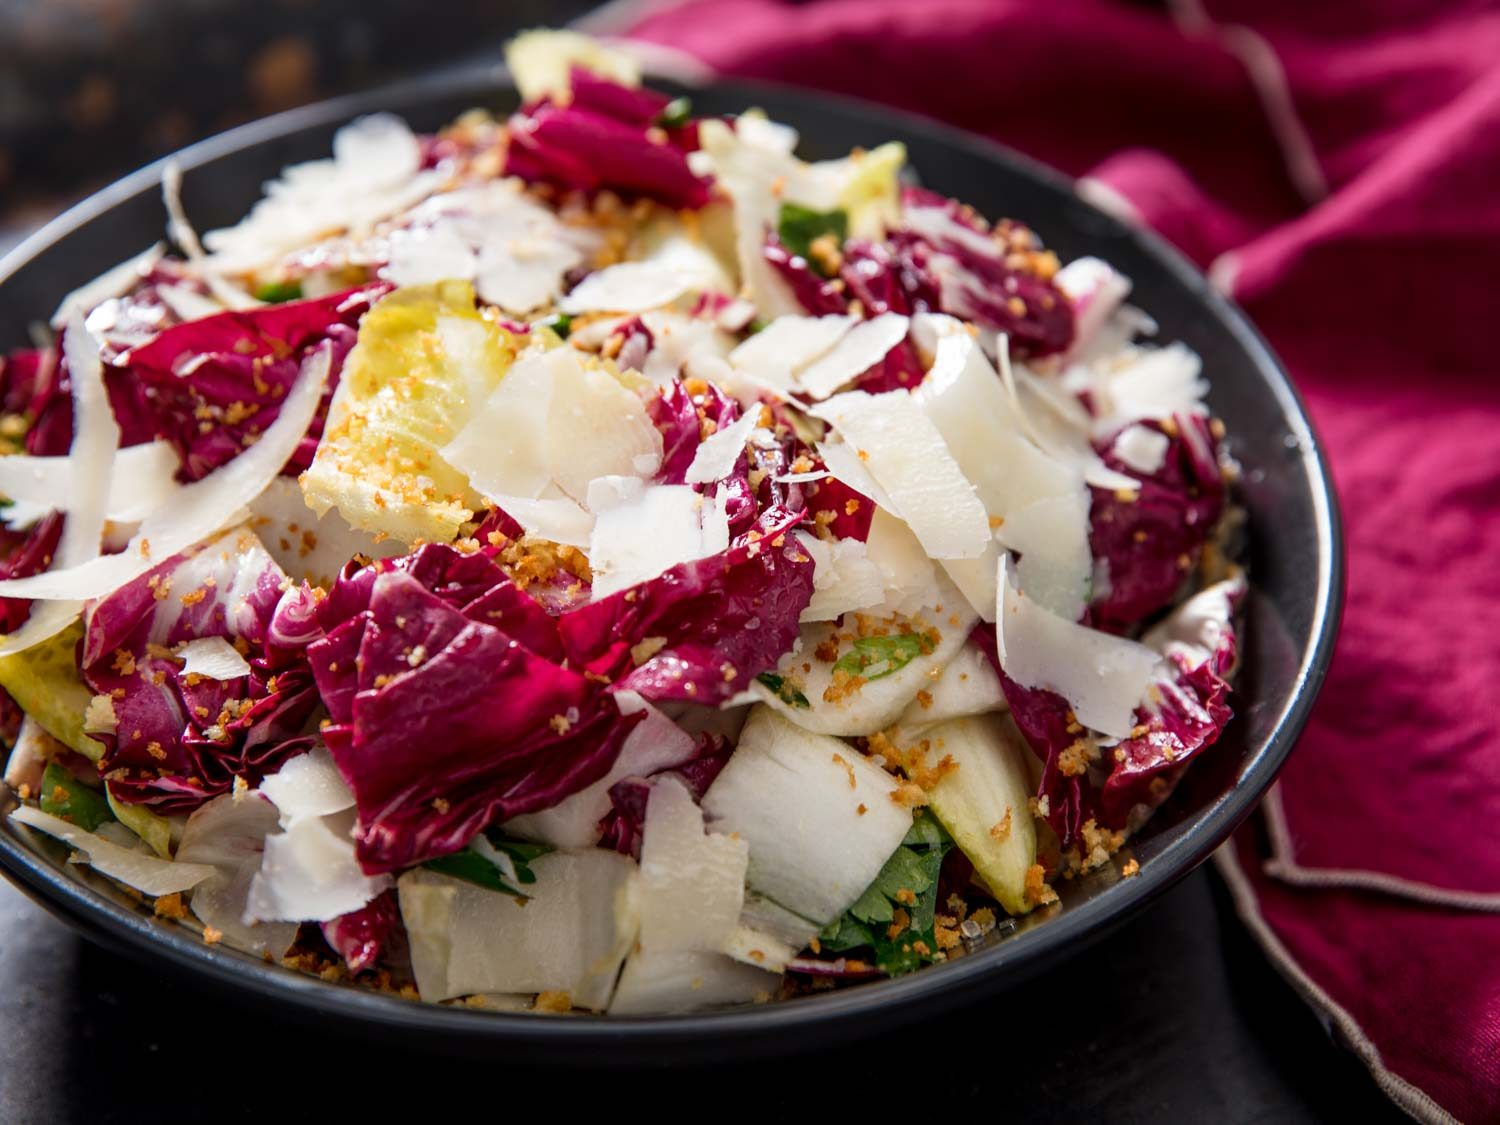 Radicchio, Endive, and Anchovy Salad